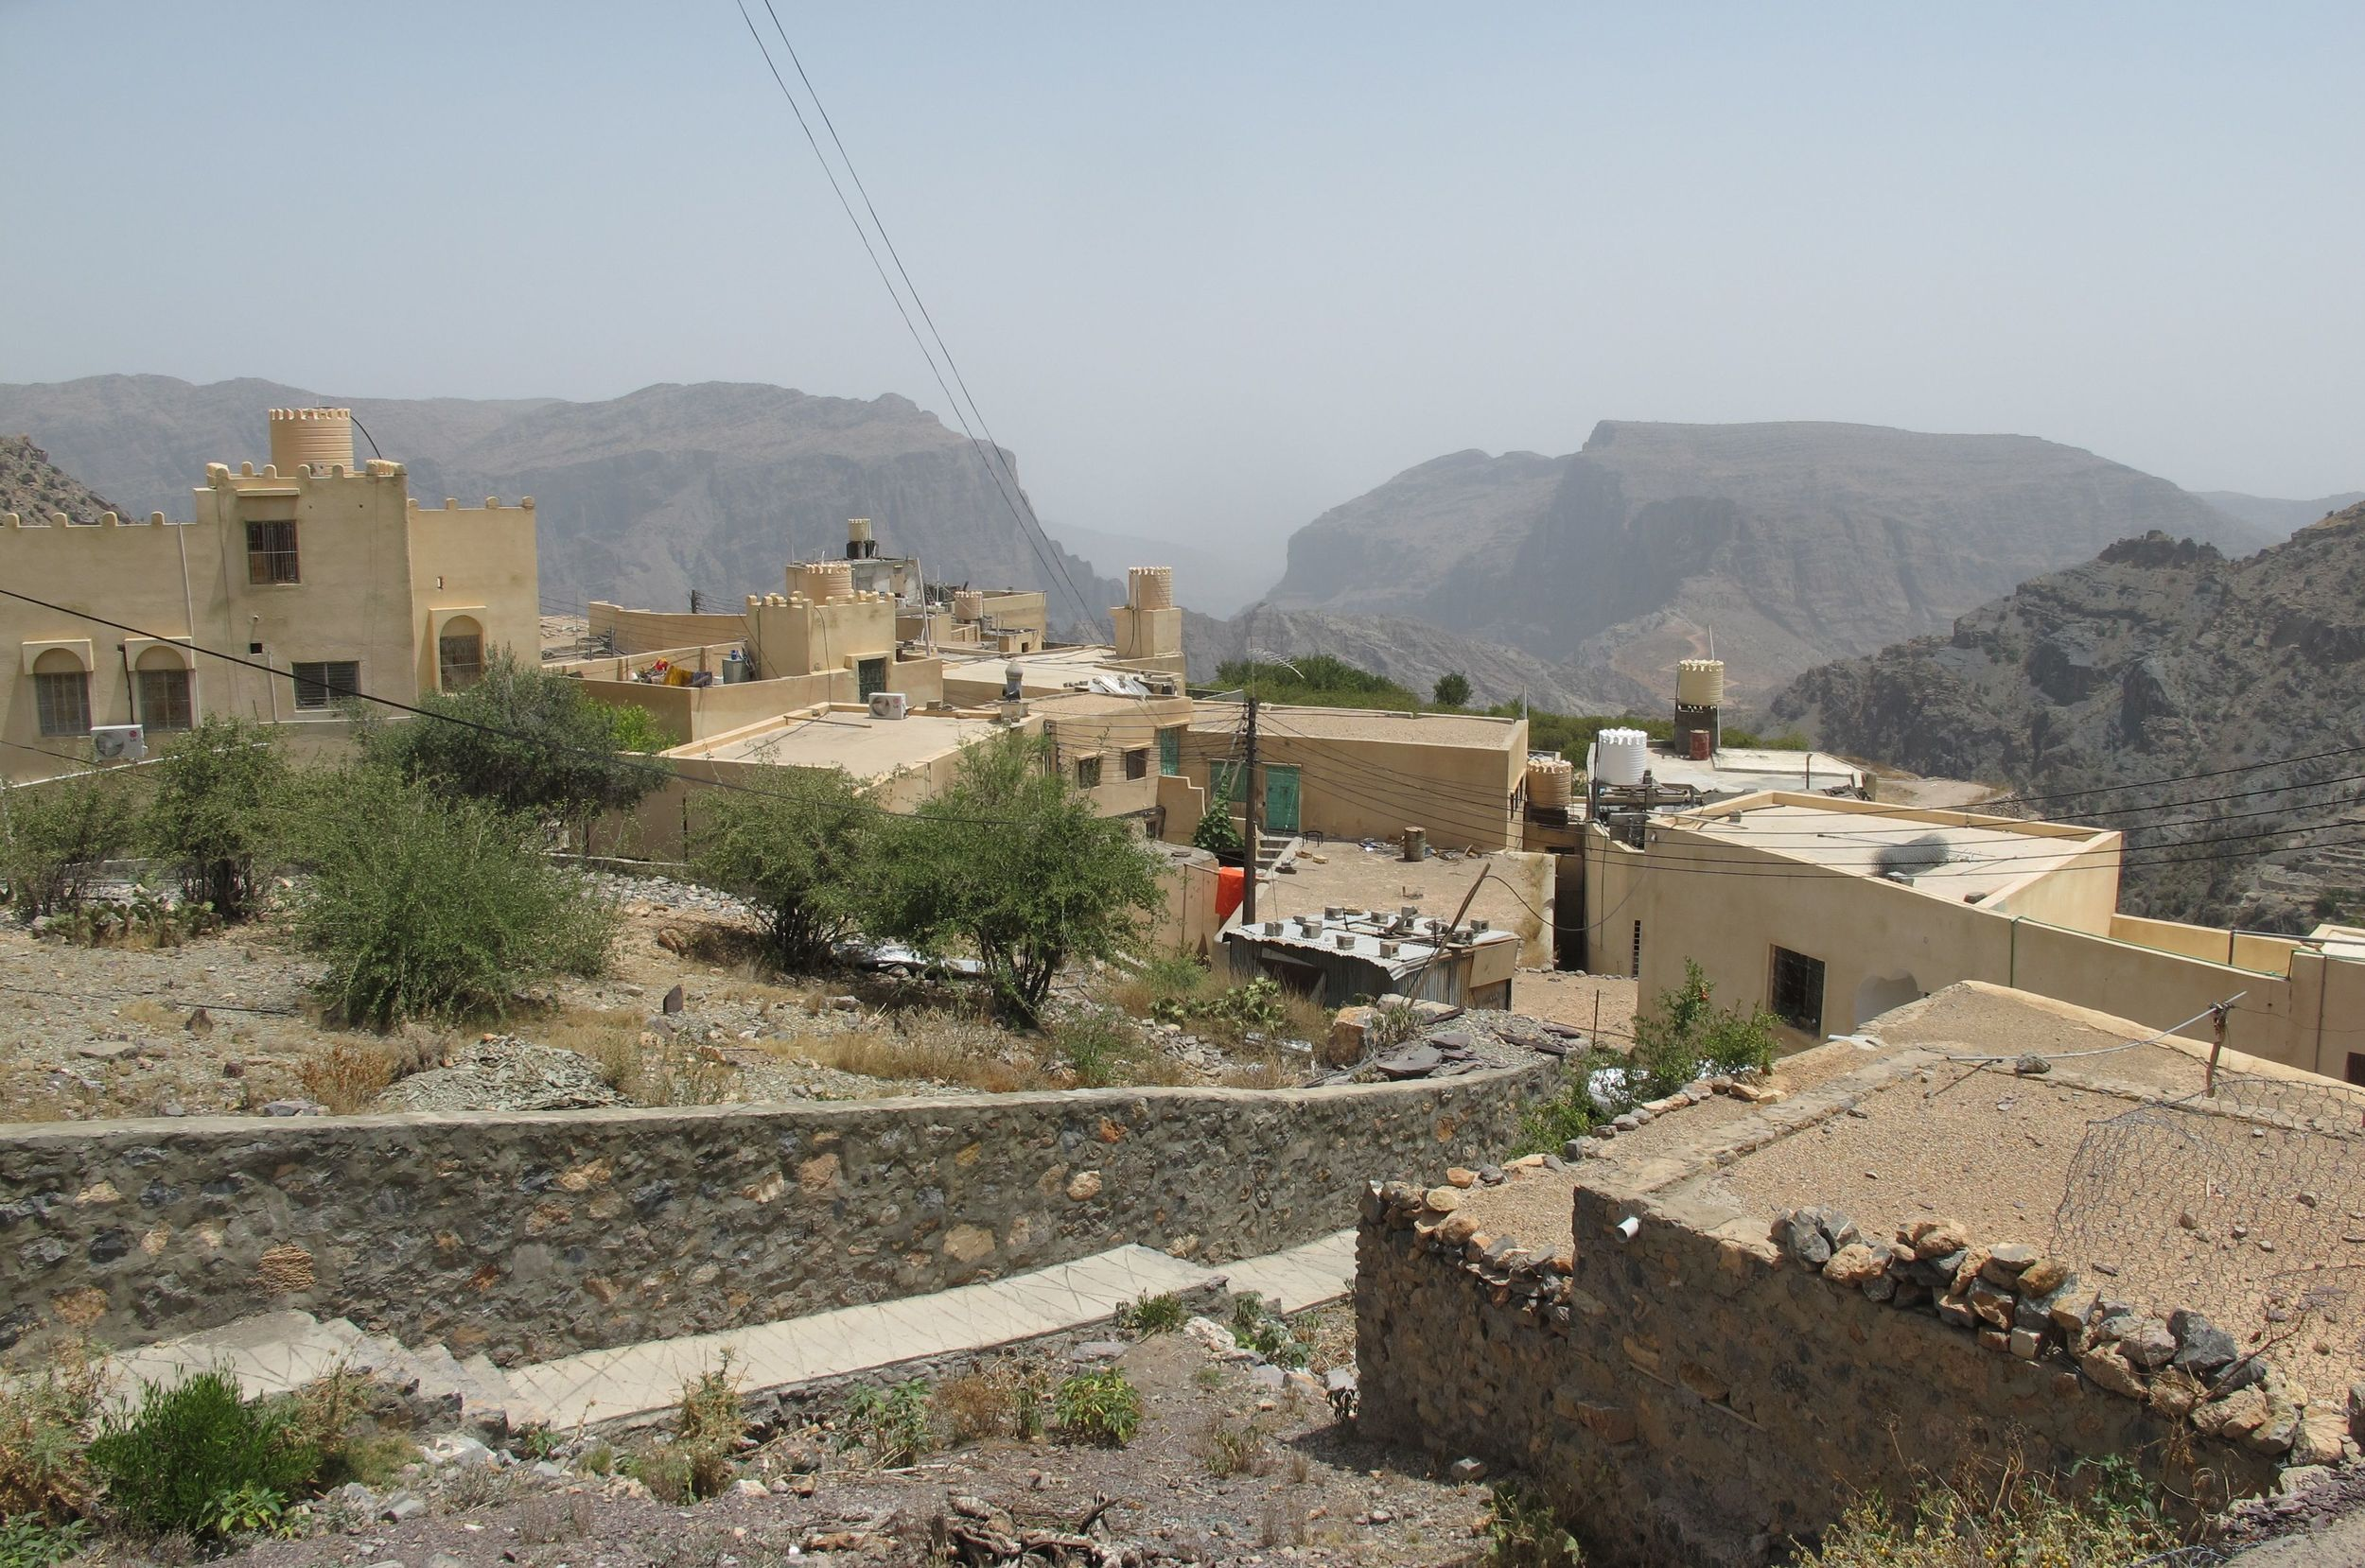 A village in Jebel Akhdar that is still very much alive and well, with terraced fields, a school, and an active social life. Around lunchtime, we saw people heading towards one of the buildings carrying bowls and trays of food. Potluck!